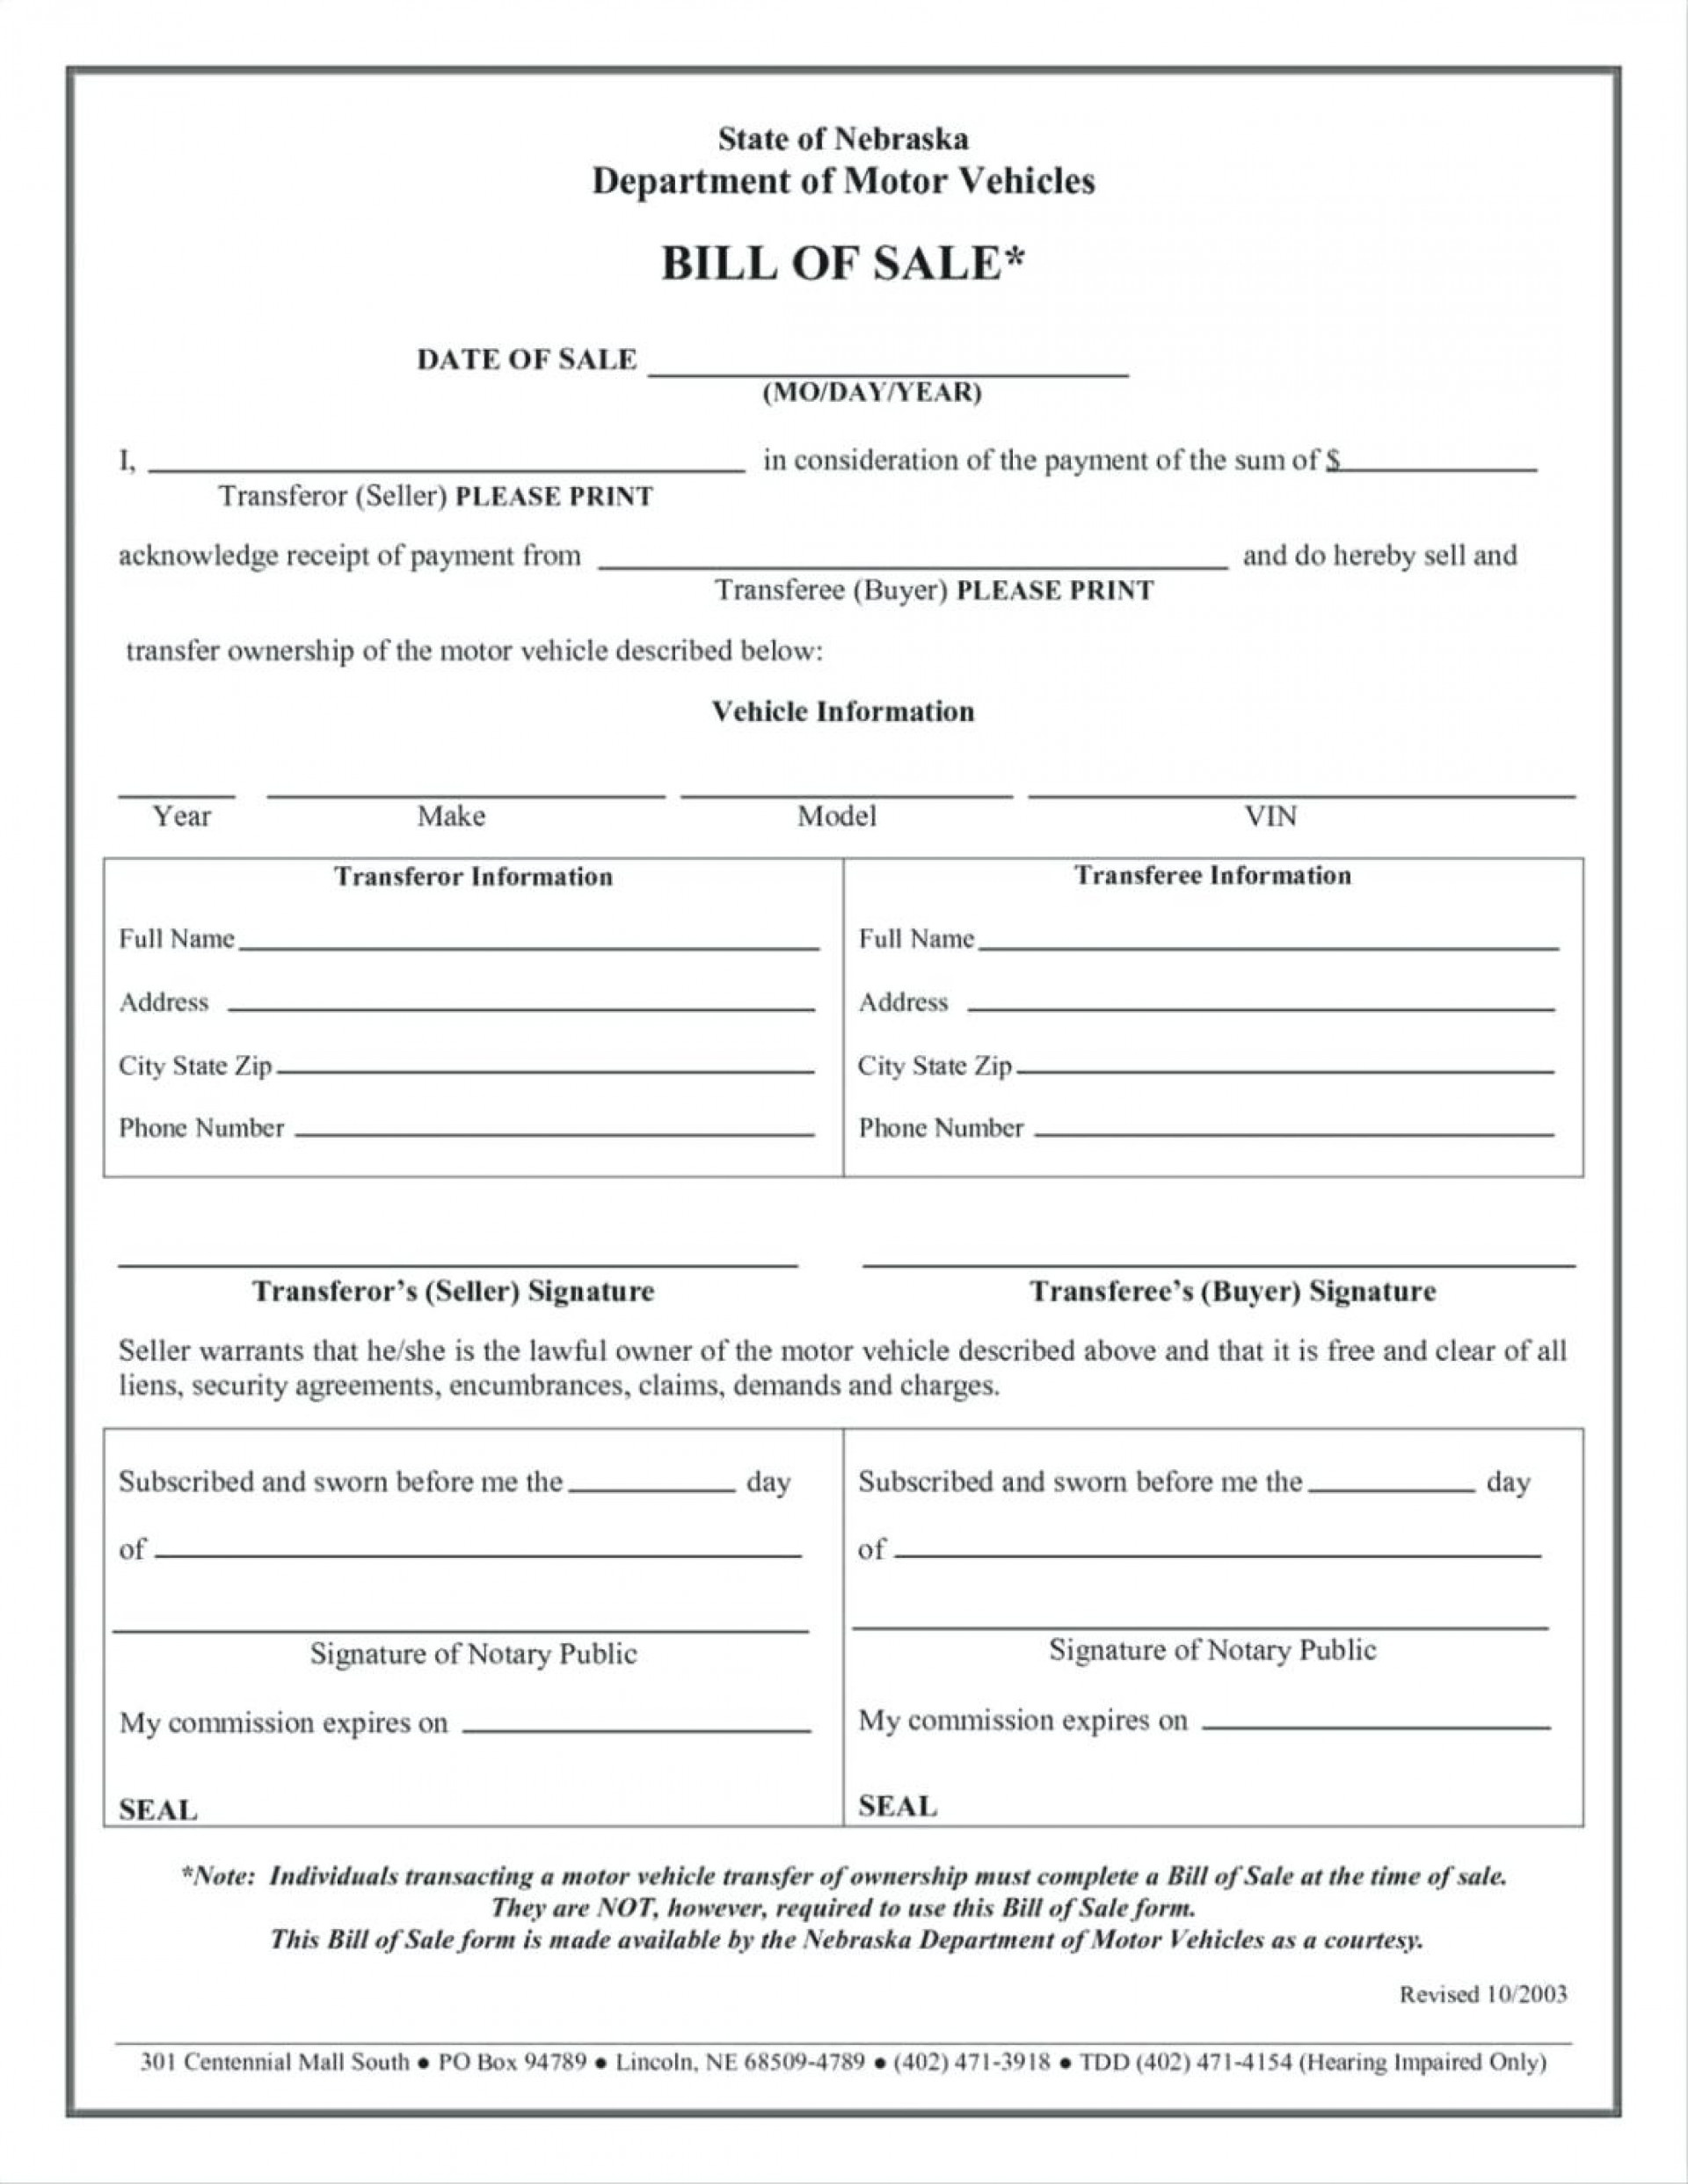 024 Free Printable Bill Of Sale Form Vehicle Template And For Mobile - Free Printable Mobile Home Bill Of Sale